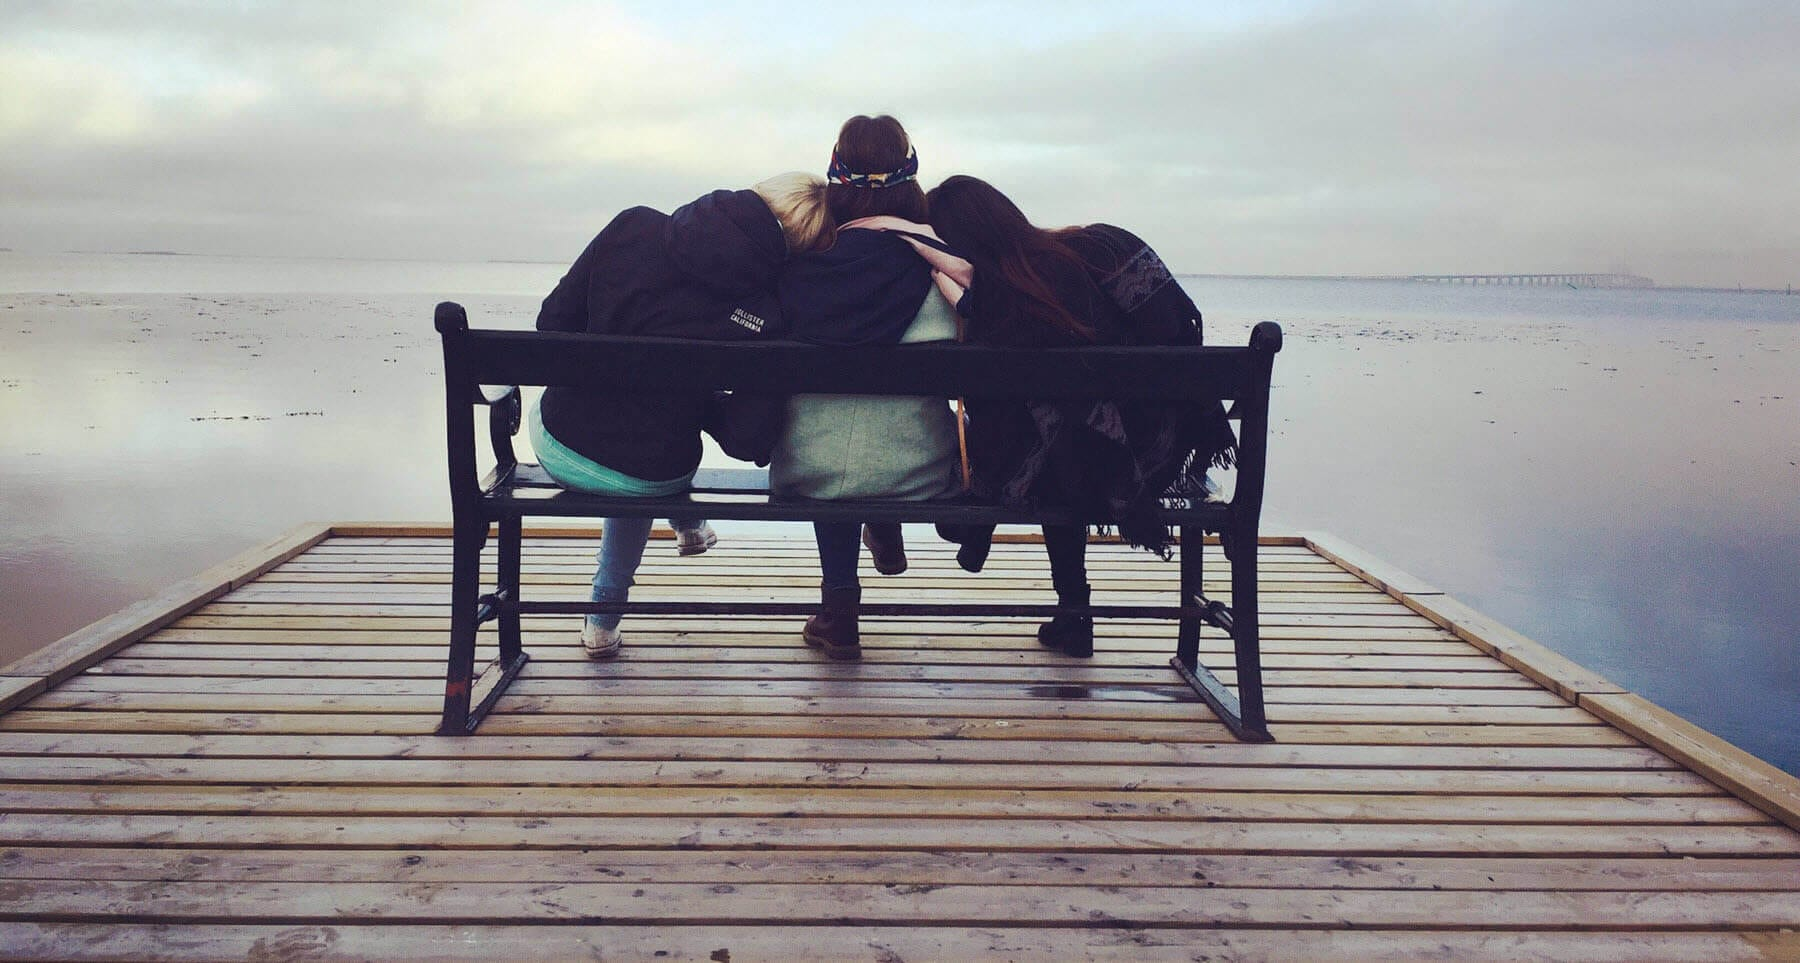 Girls sitting on a bench helping their friend who is struggling with depression